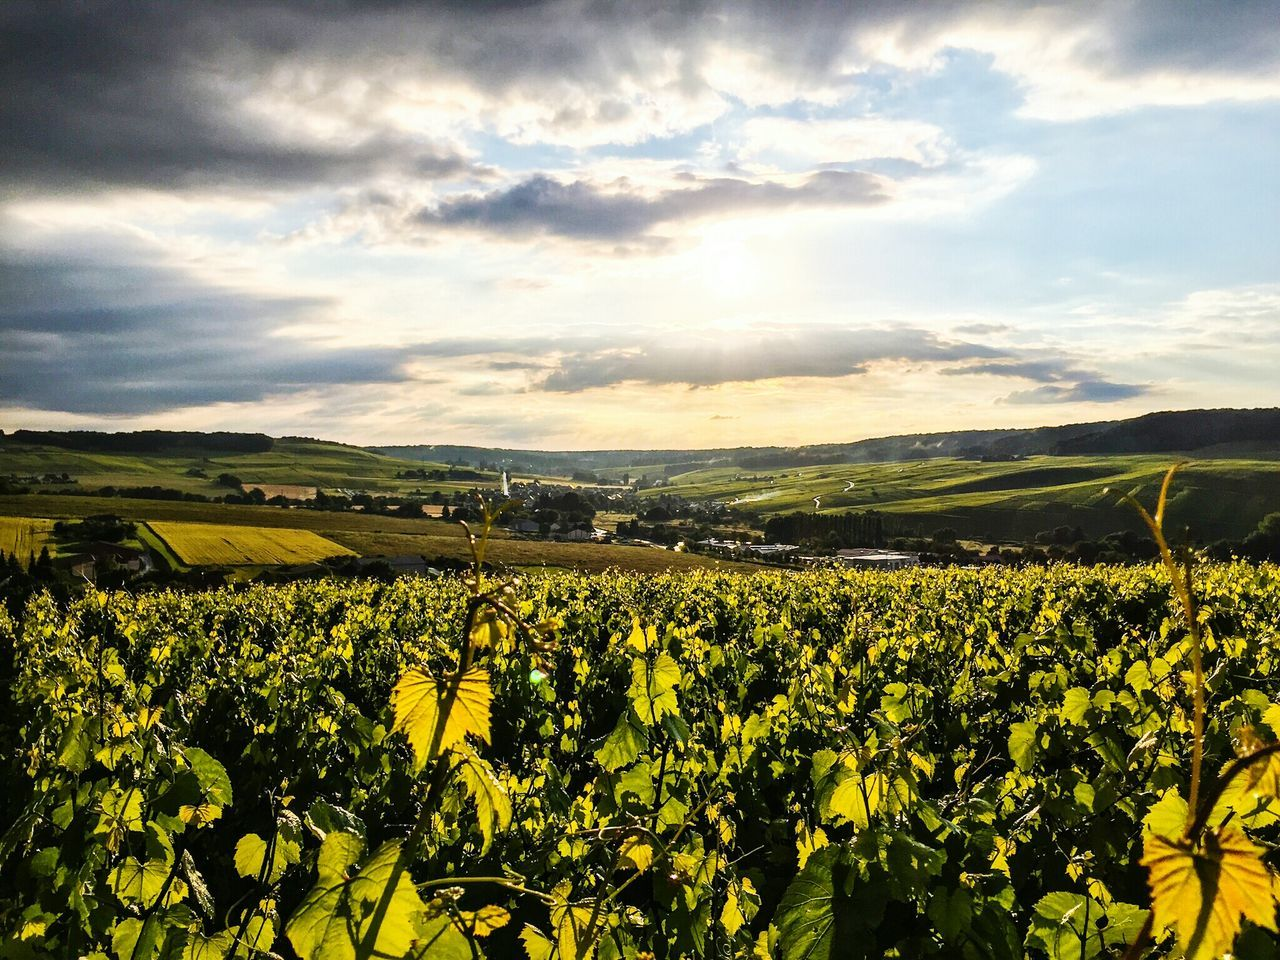 No People Champagne Region Champagne France Green Grapes Champagne Grapes Wine Grapes Wine Best EyeEm Nature Nature_collection Nature Photography EyeEm Nature Lover Naturelovers Flowerporn Nature_perfection Vivelafrance